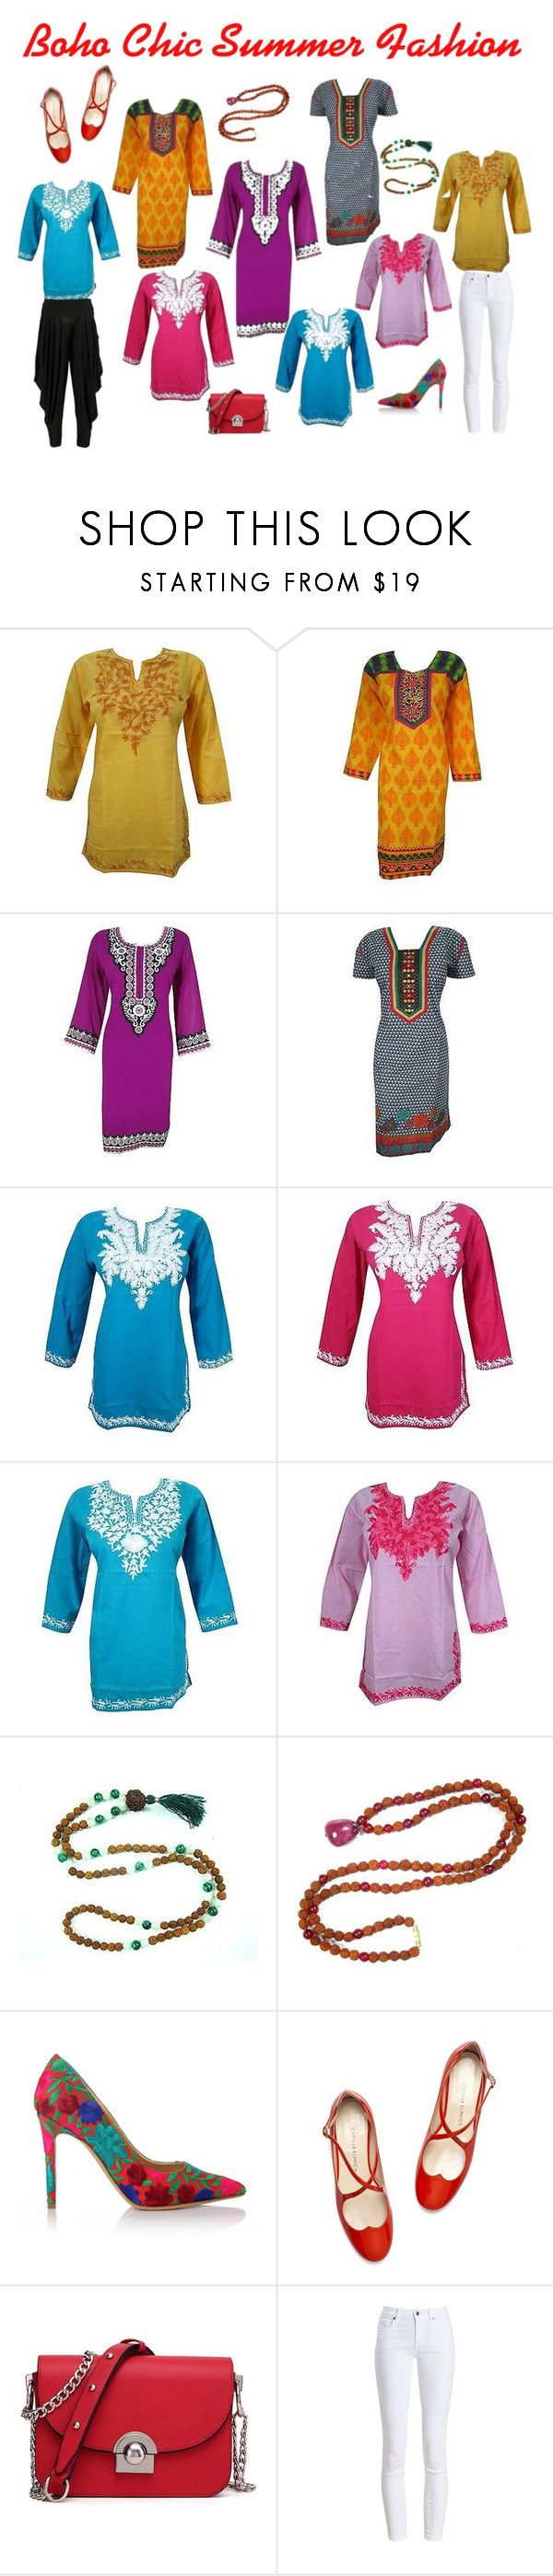 Boho Chic Cotton Tunic Dress For Summer by baydeals on Polyvore featuring Barbour, Boohoo and Vivienne Westwood  http://stores.ebay.com/mogulgallery/DESIGNER-KURTI-/_i.html?_fsub=665889019&_sid=3781319&_trksid=p4634.c0.m322